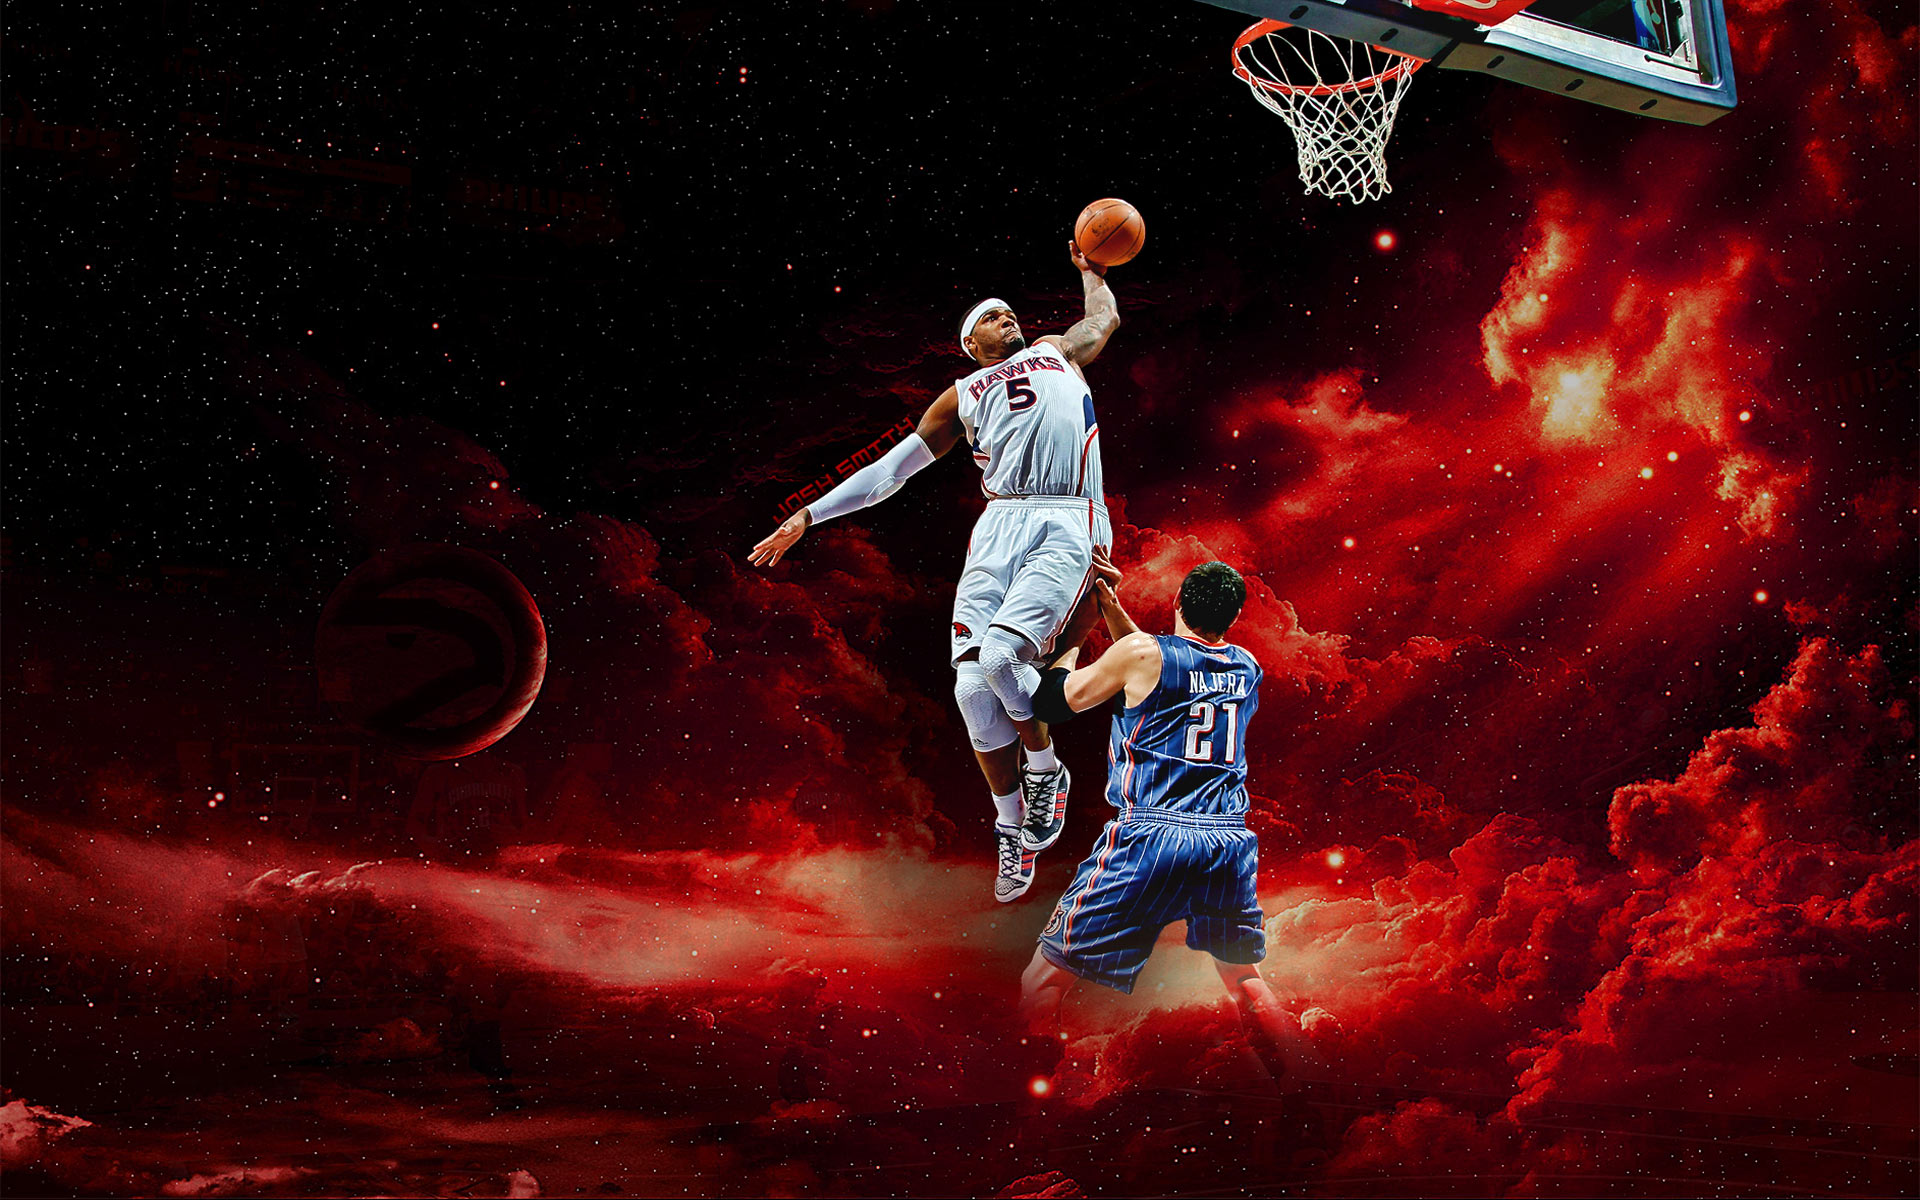 http://www.basketwallpapers.com/Images-09/Josh-Smith-Dunk-Over-Najera-Widescreen-Wallpaper.jpg